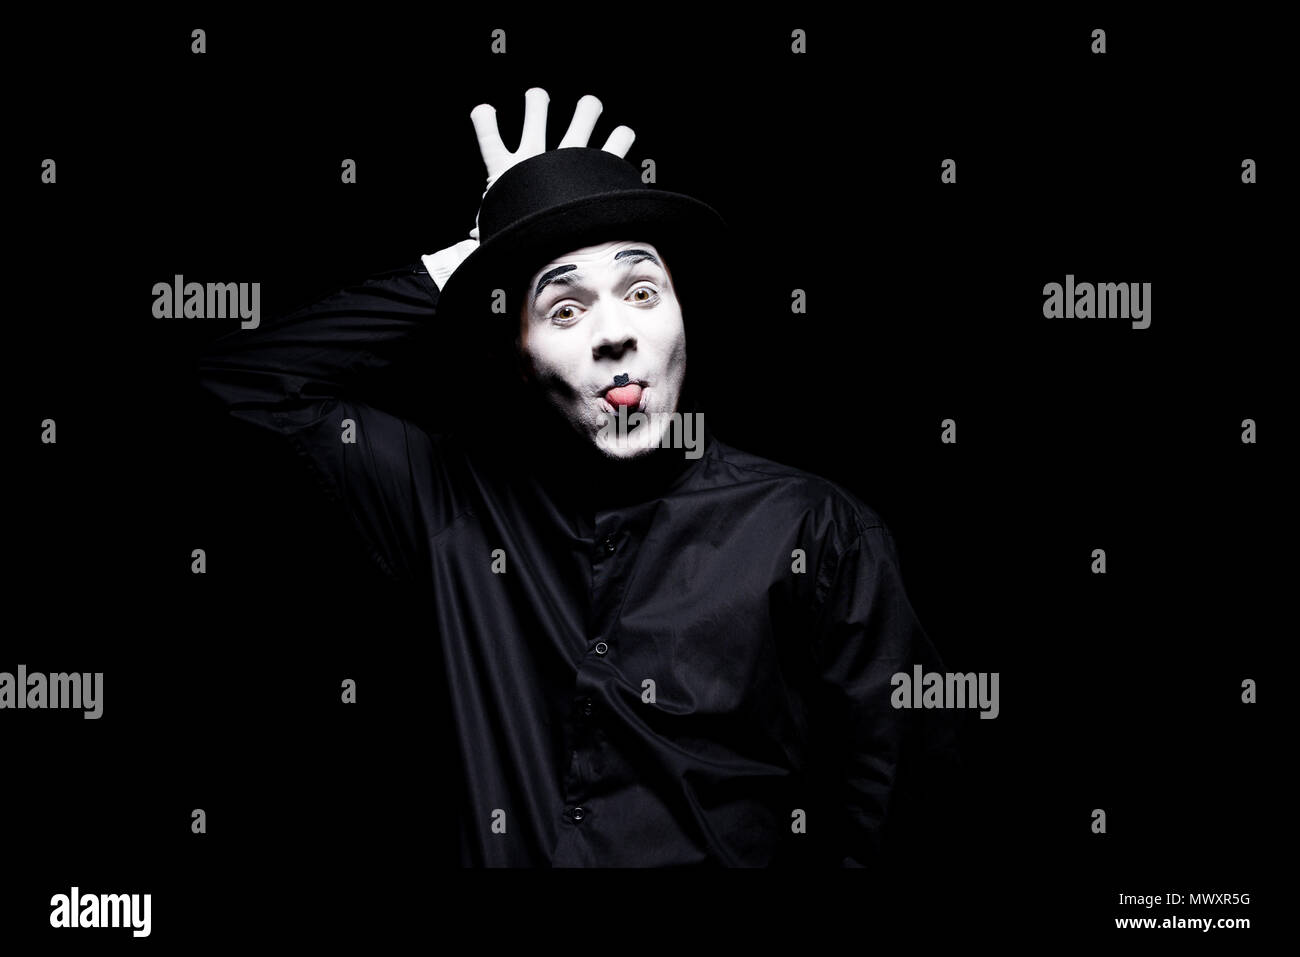 mime sticking tongue out and grimacing isolated on black - Stock Image